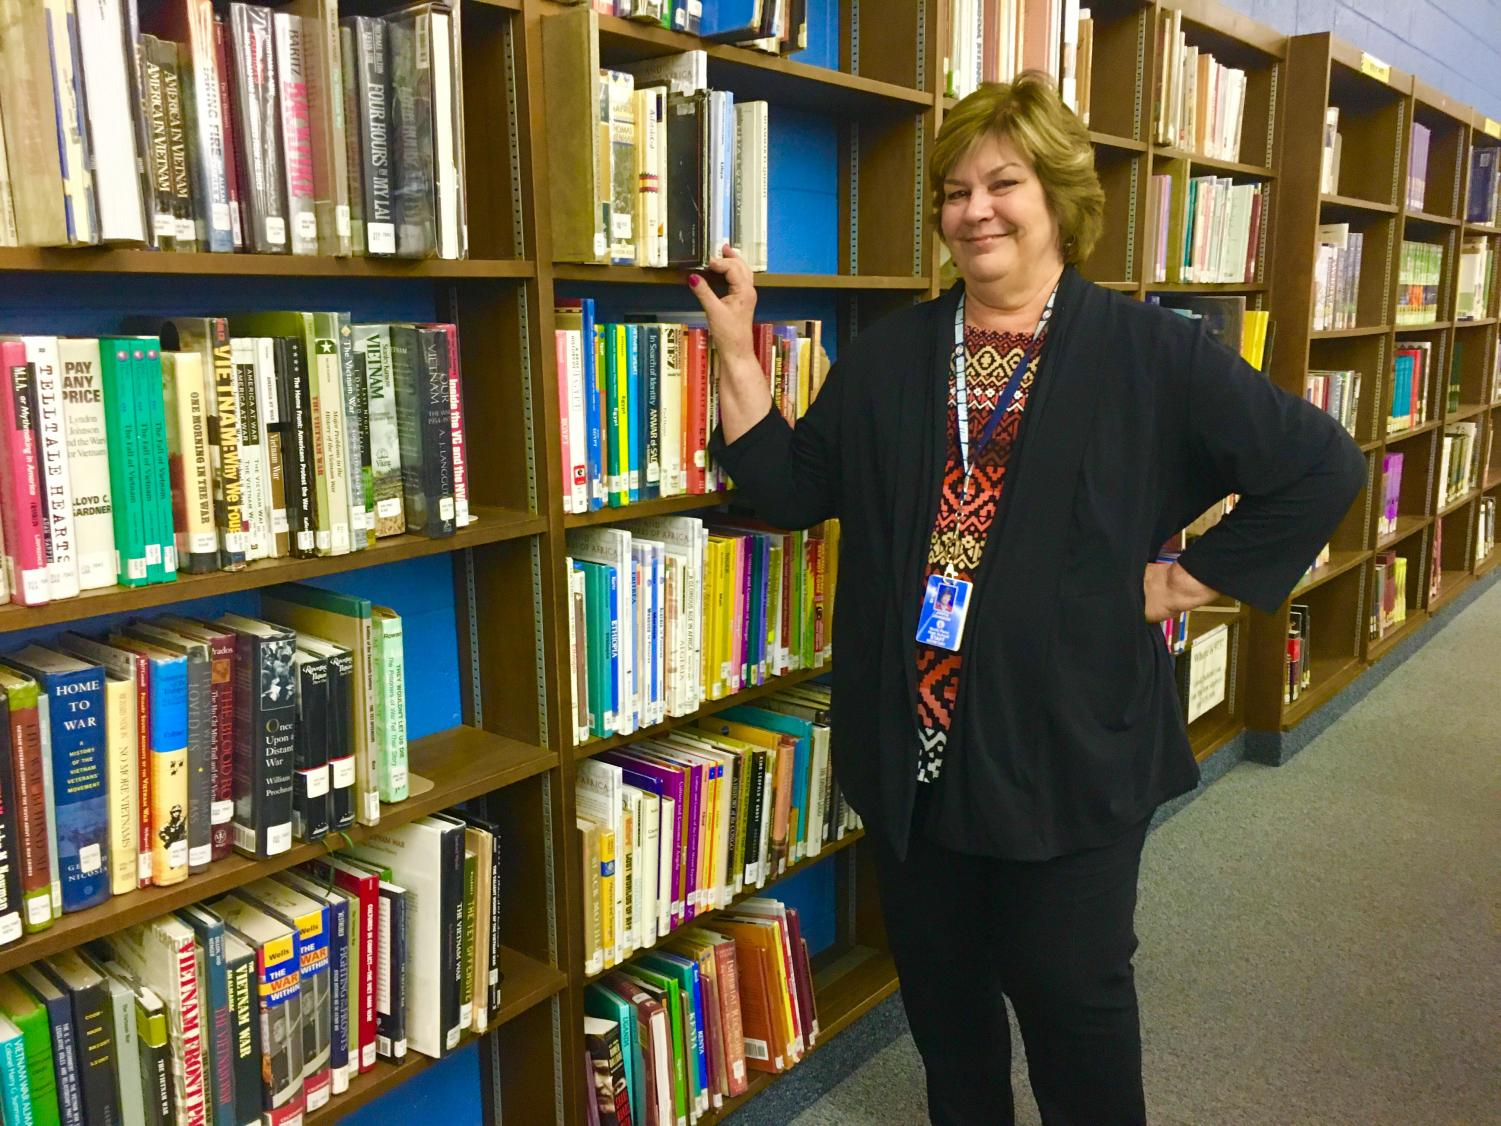 Library secretary Janice Johnson poses by the bookshelves. Johnson will retire this year.